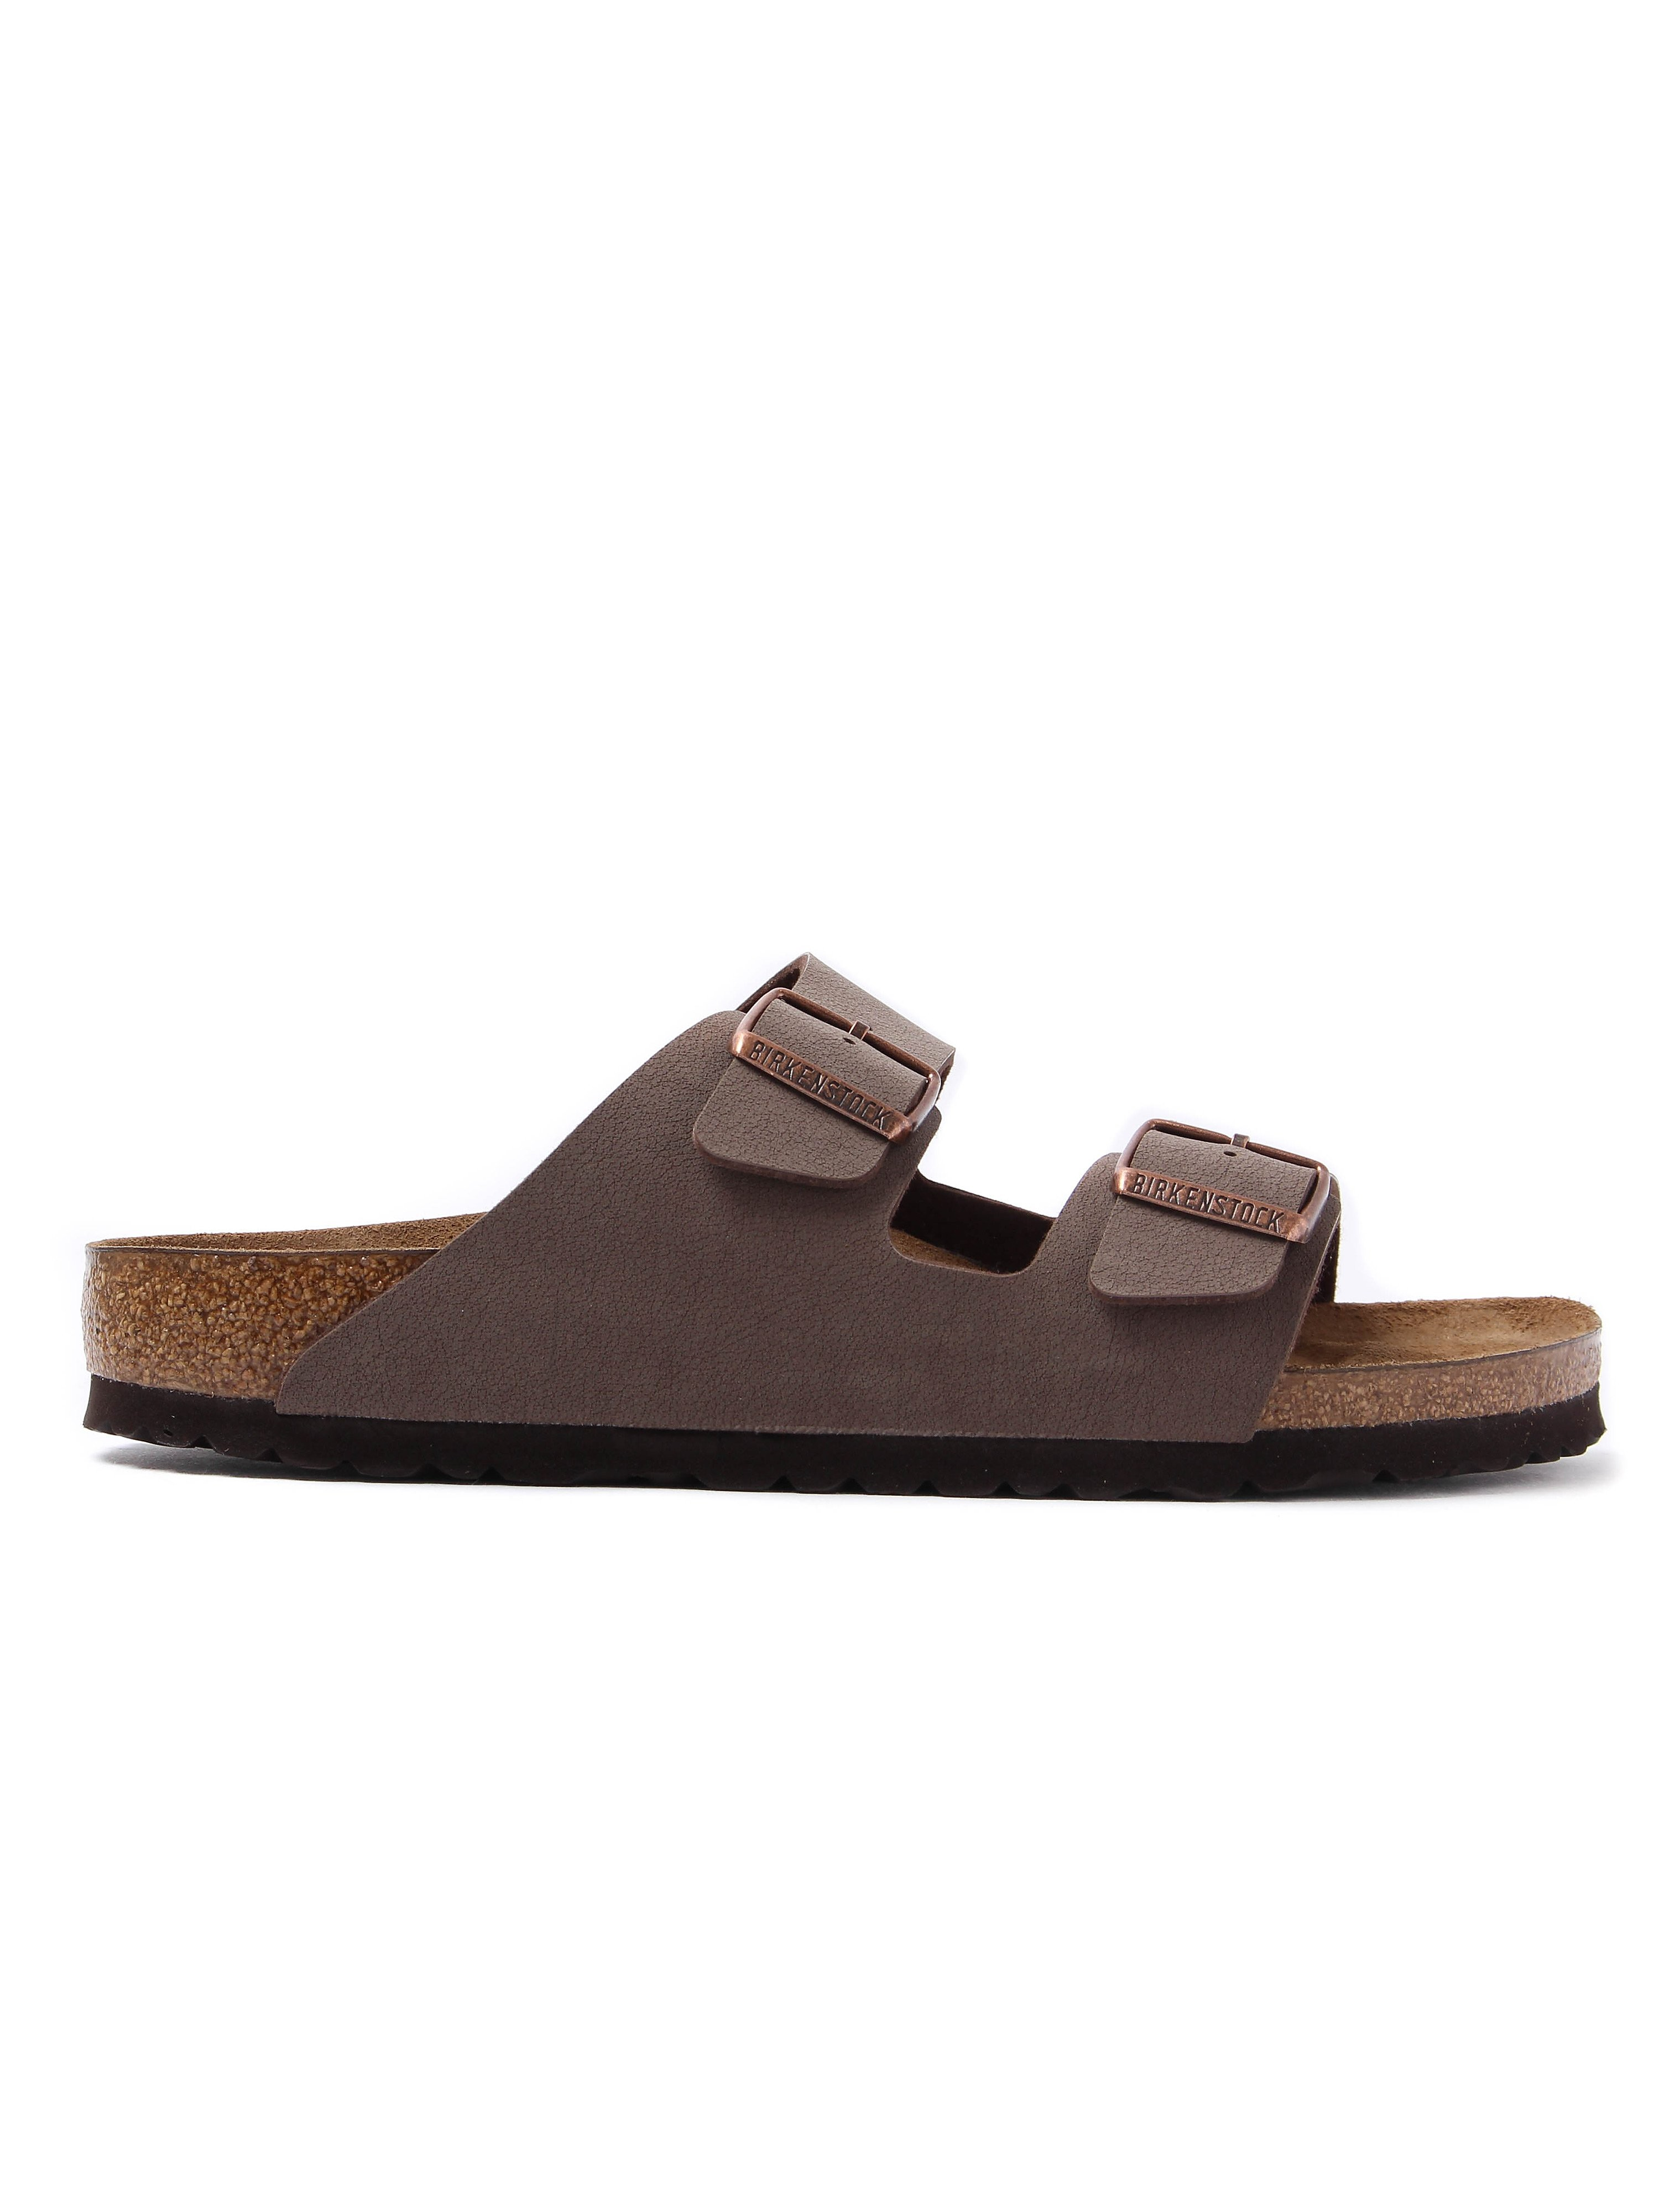 Birkenstock Women's Arizona Double Strap Leather Sandals - Mocca